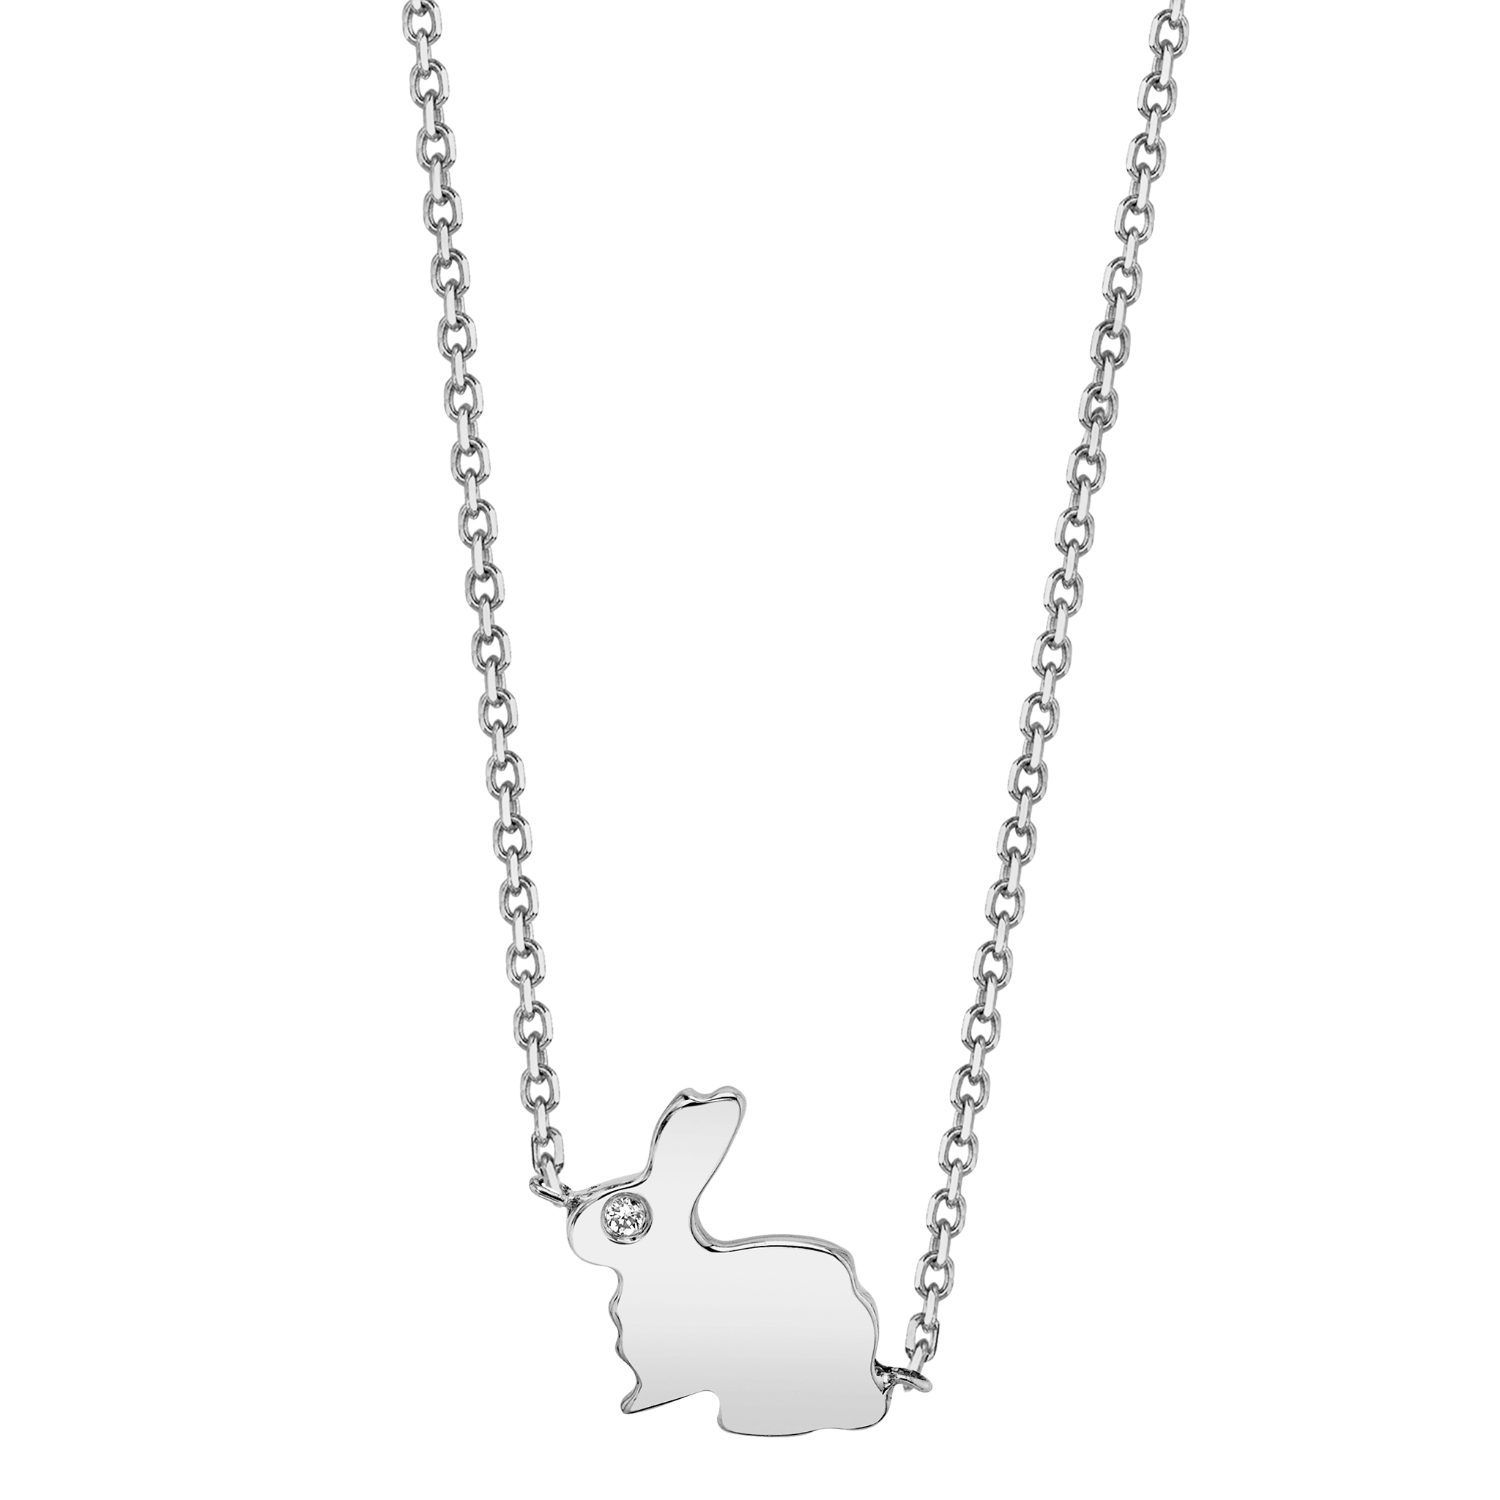 Dainty Bunny Rabbit Necklace